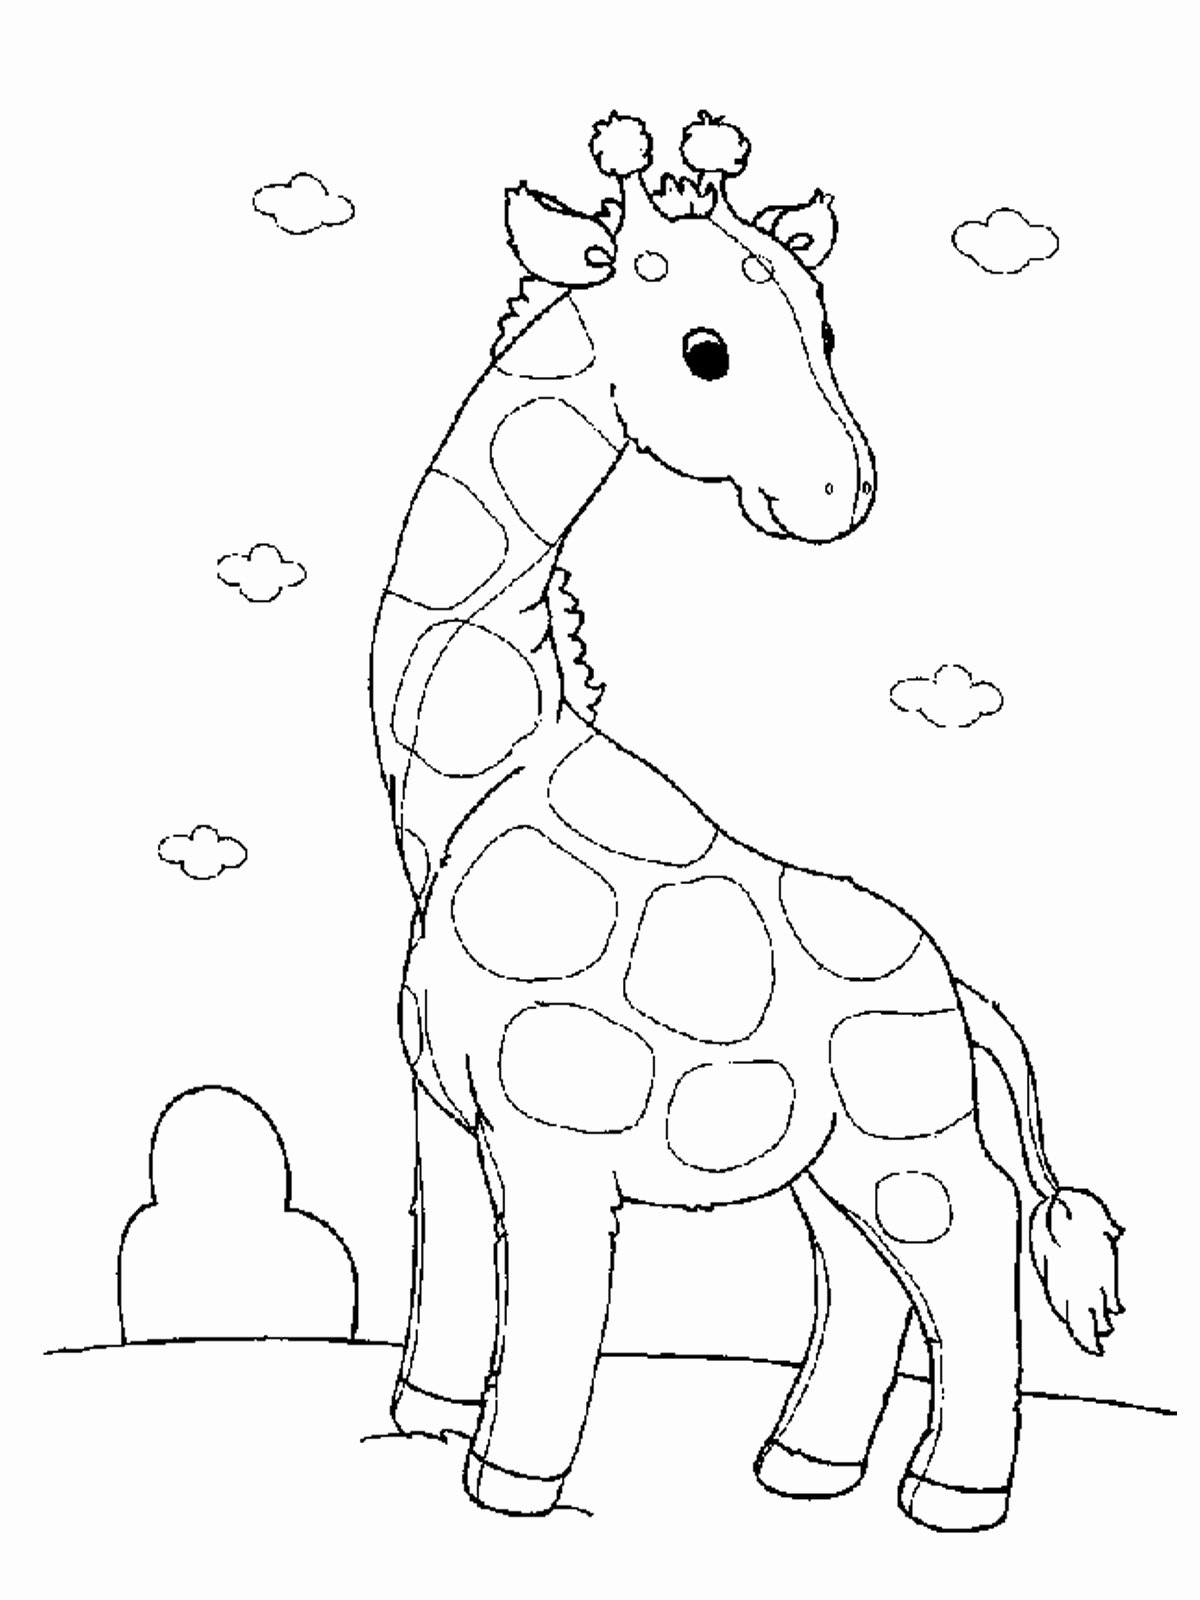 Baby Animals Colouring Pictures Best Of Free Printable Giraffe Coloring Pages for Kids